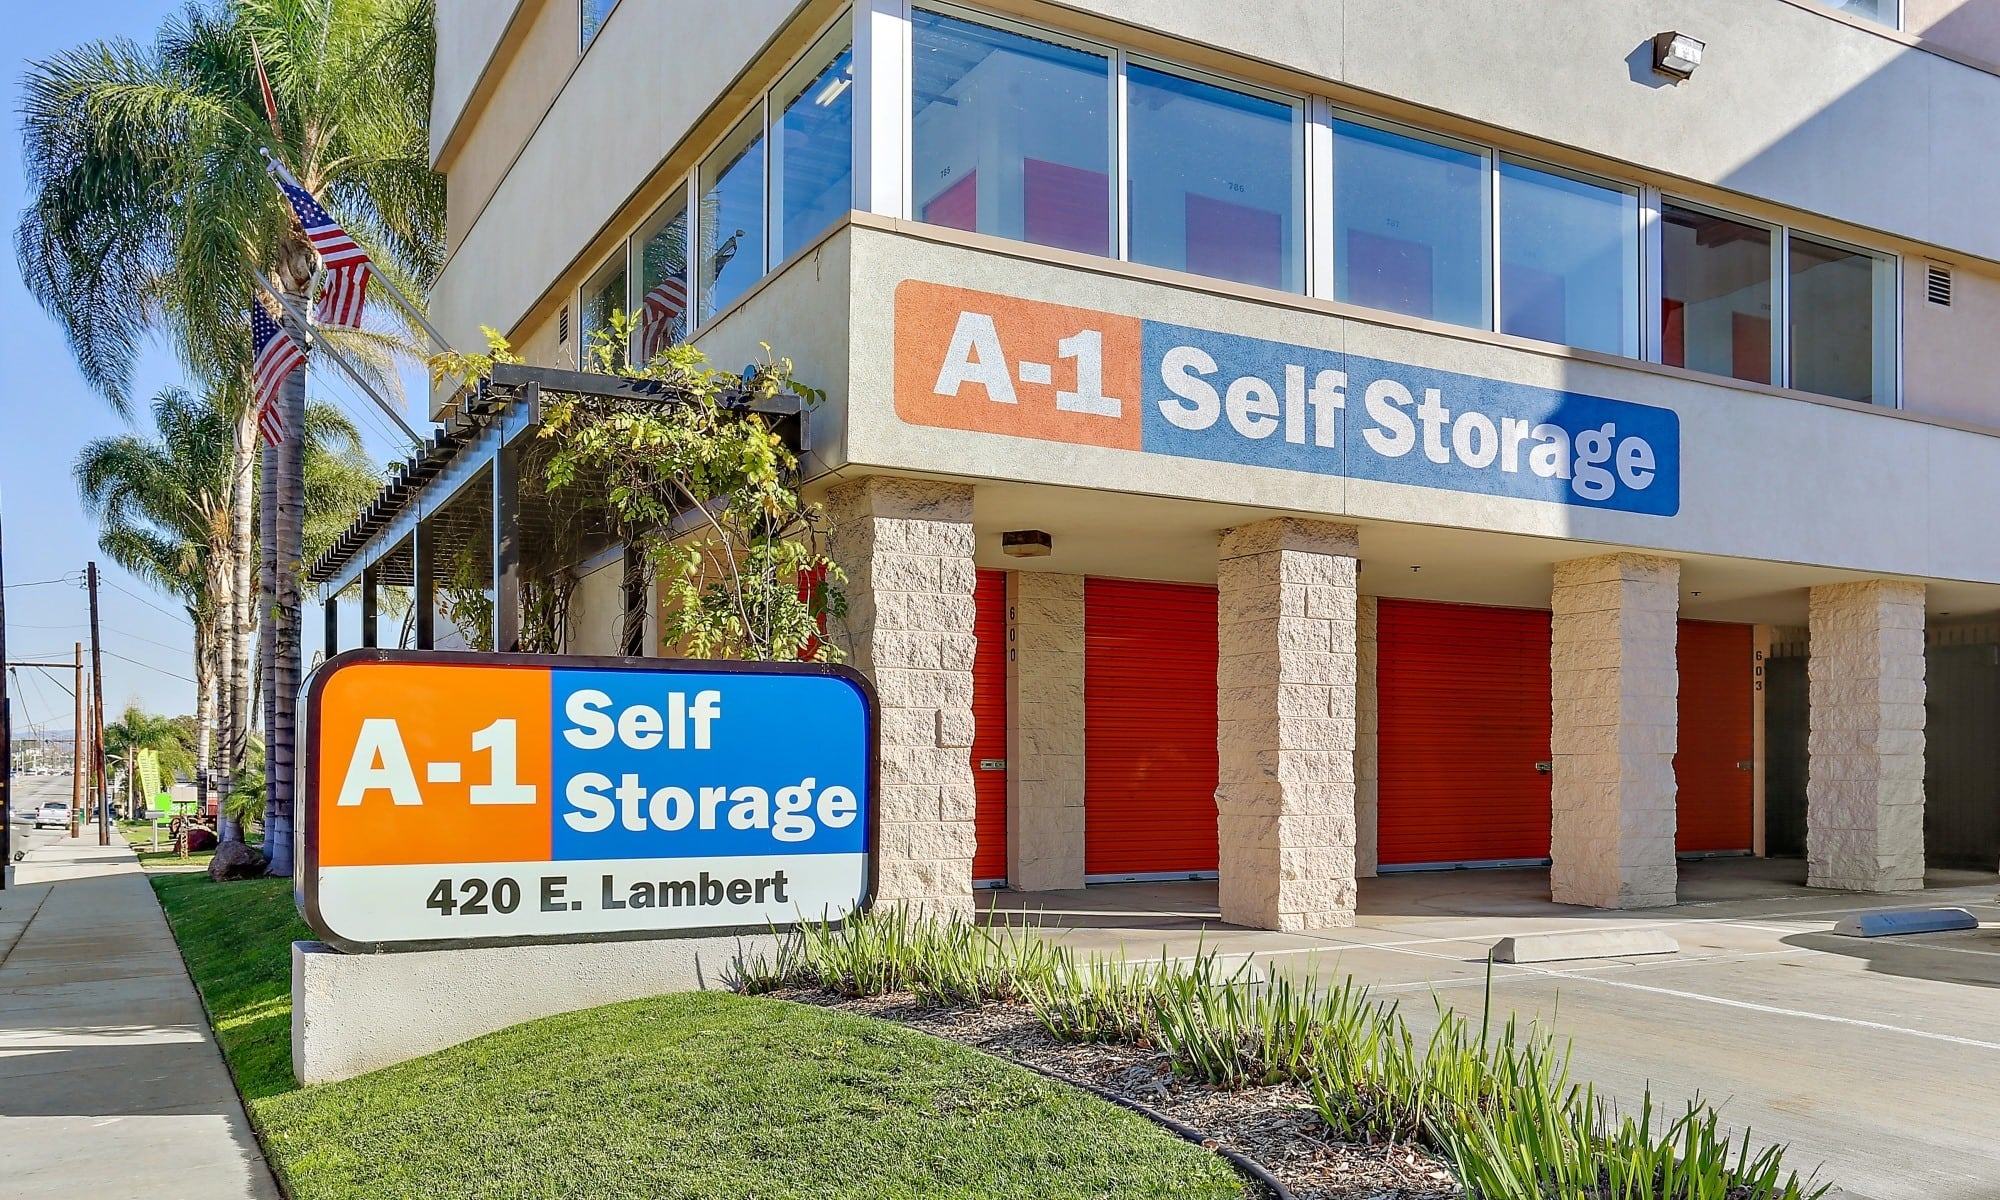 Self storage in La Habra CA